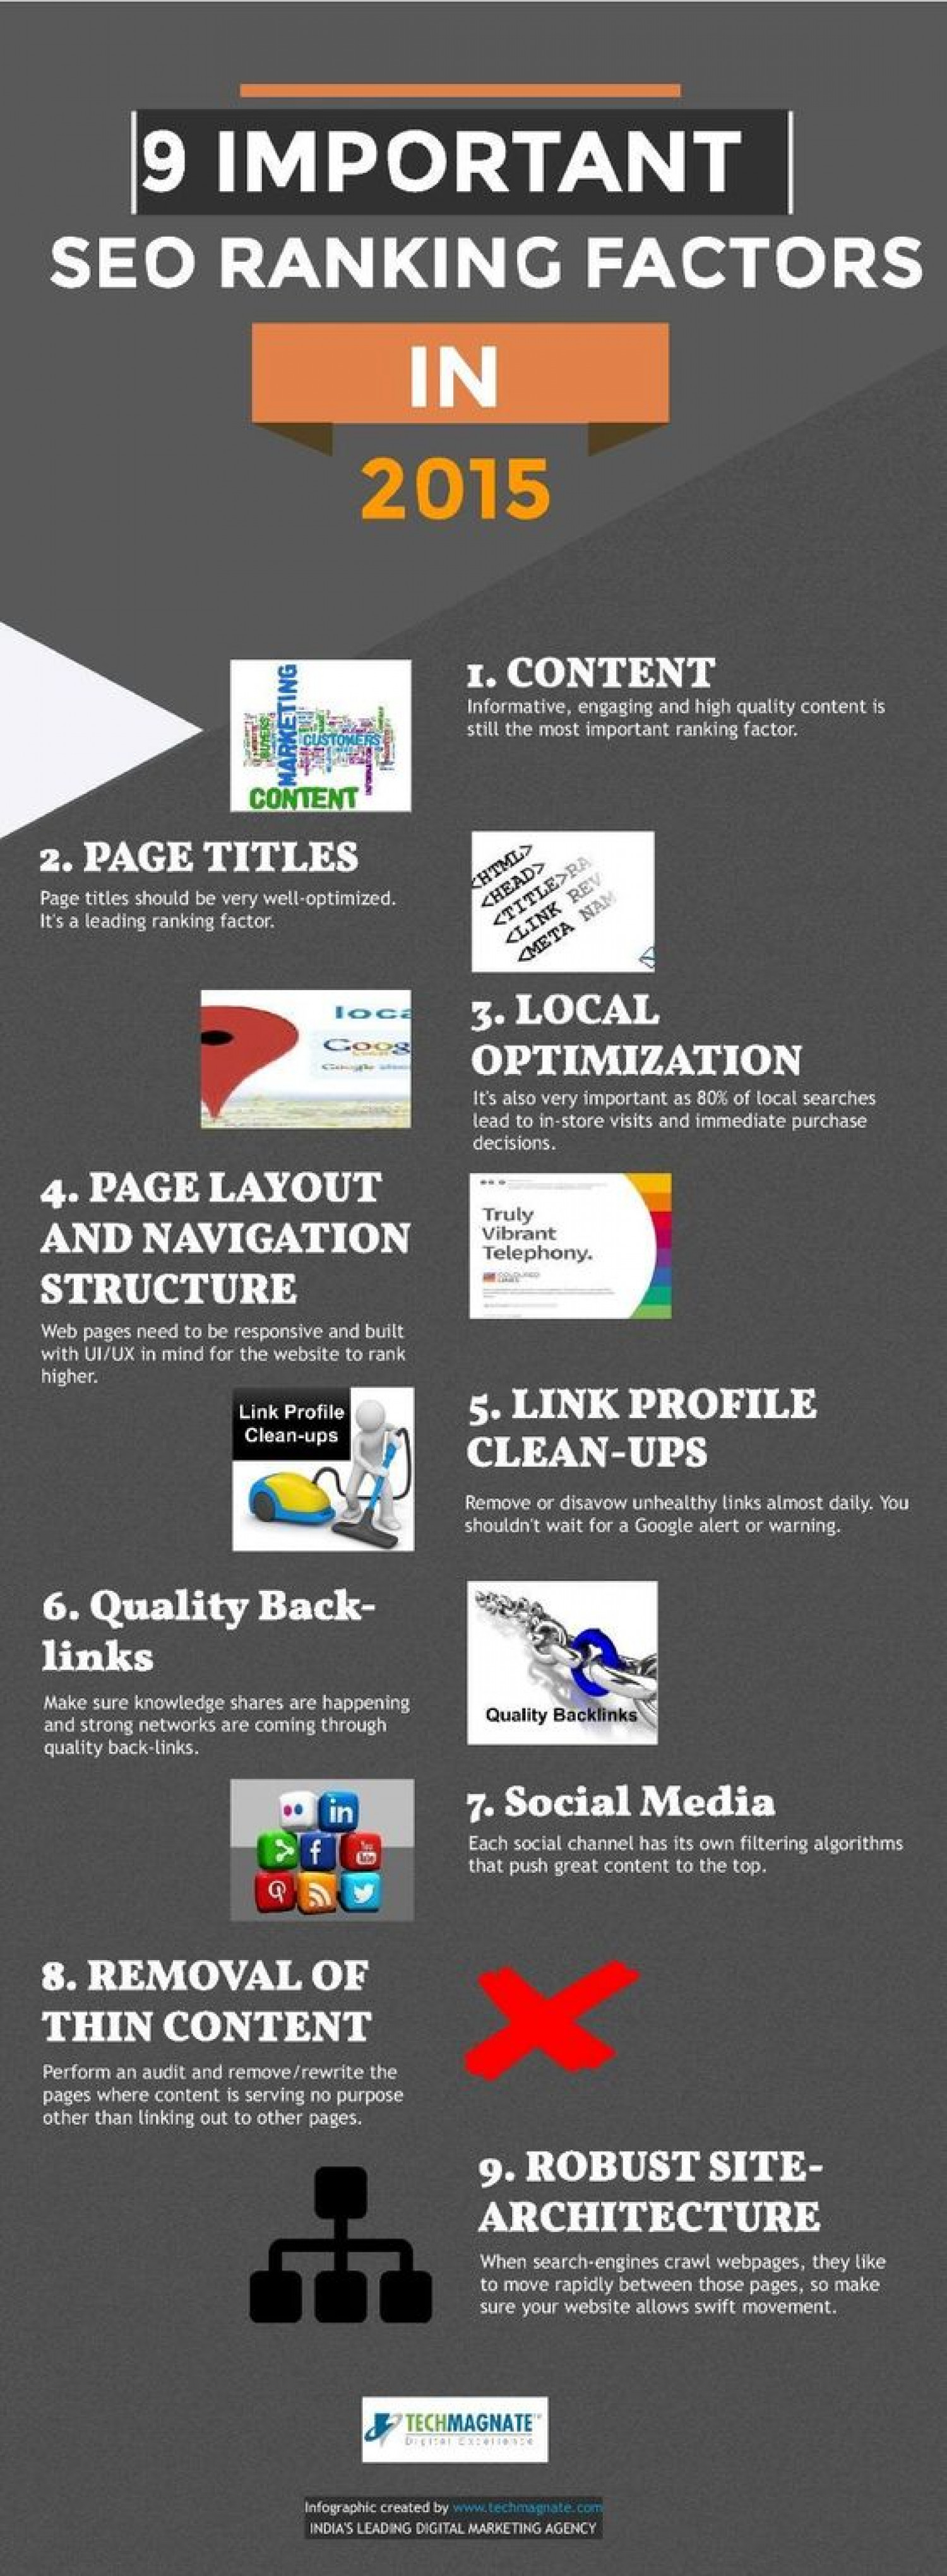 9 Important SEO Ranking Factors in 2015 Infographic